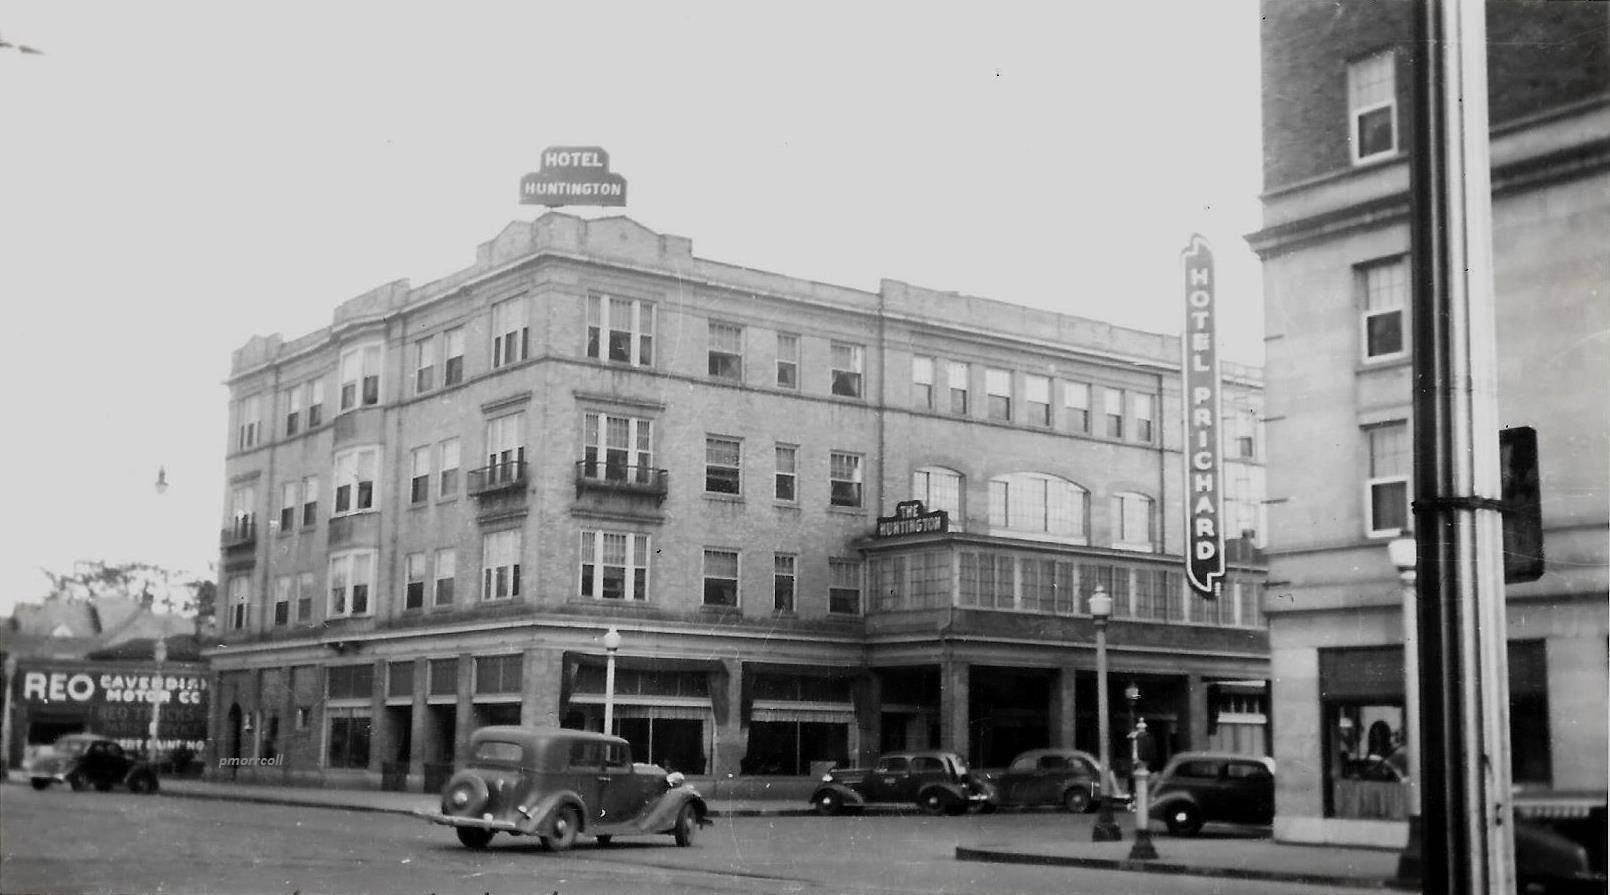 The Hotel Huntington in 1936